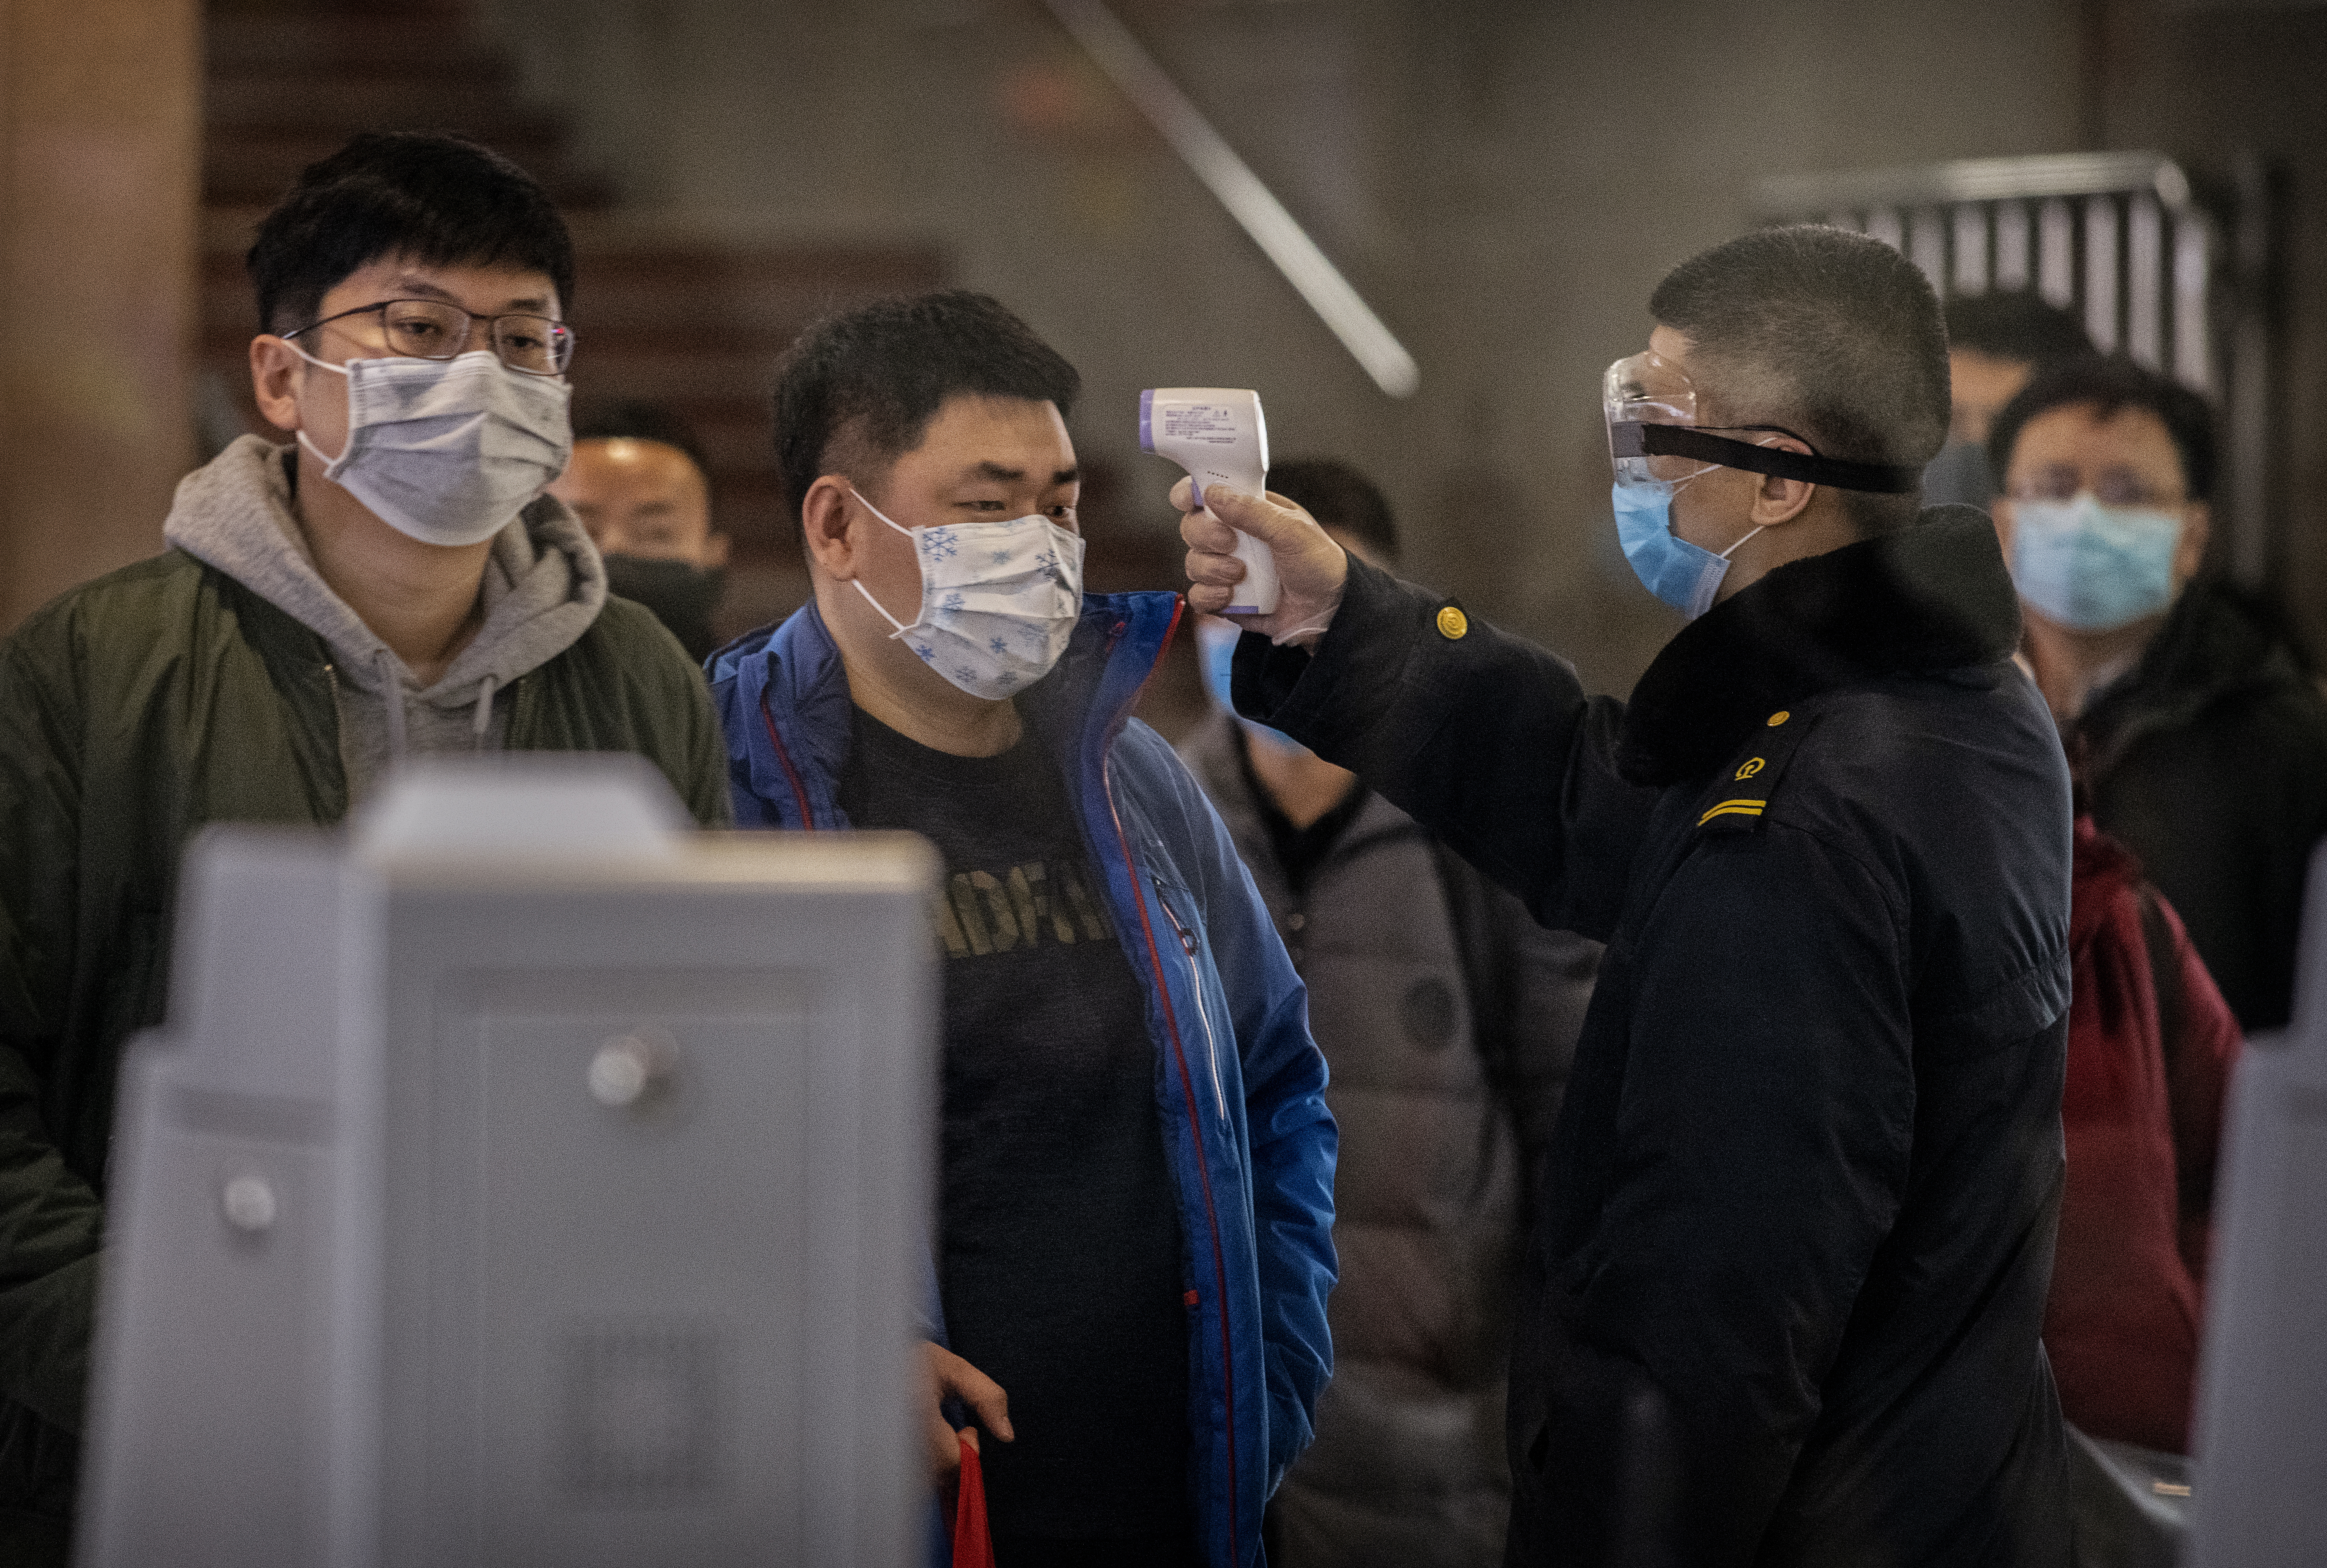 A Chinese passenger that just arrived on the last bullet train from Wuhan to Beijing is checked for a fever by a health worker at a Beijing railway station on January 23, 2020. (Photo by Kevin Frayer/Getty Images)